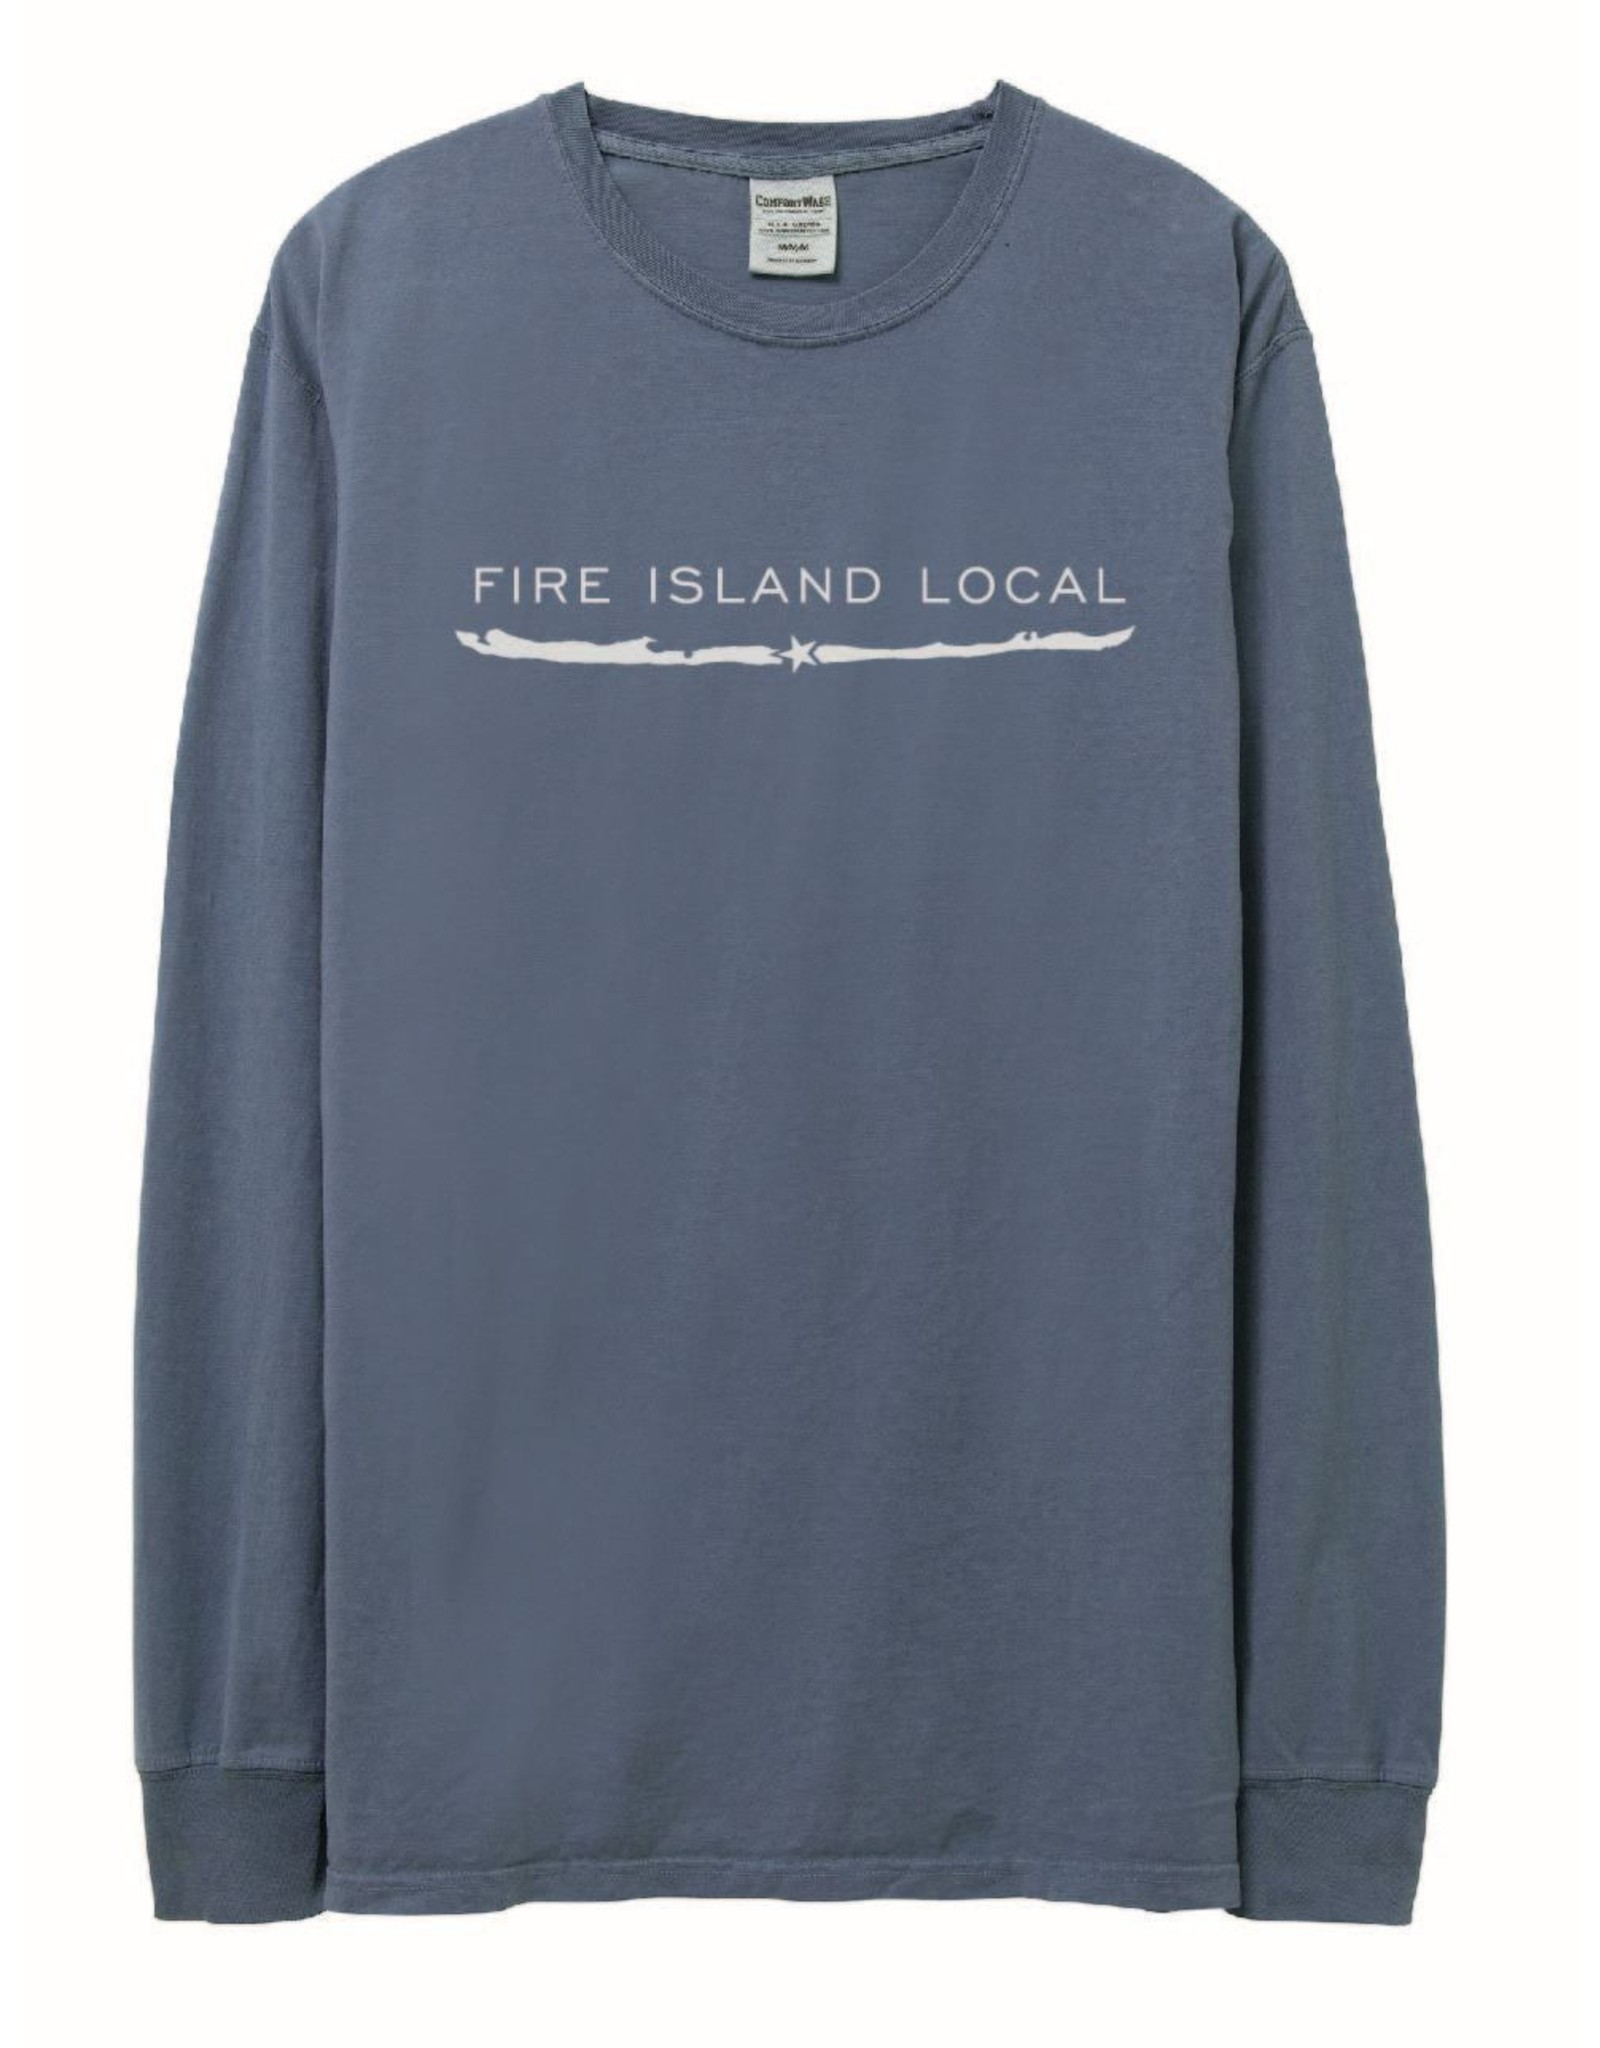 ComfortColors Fire Island Local